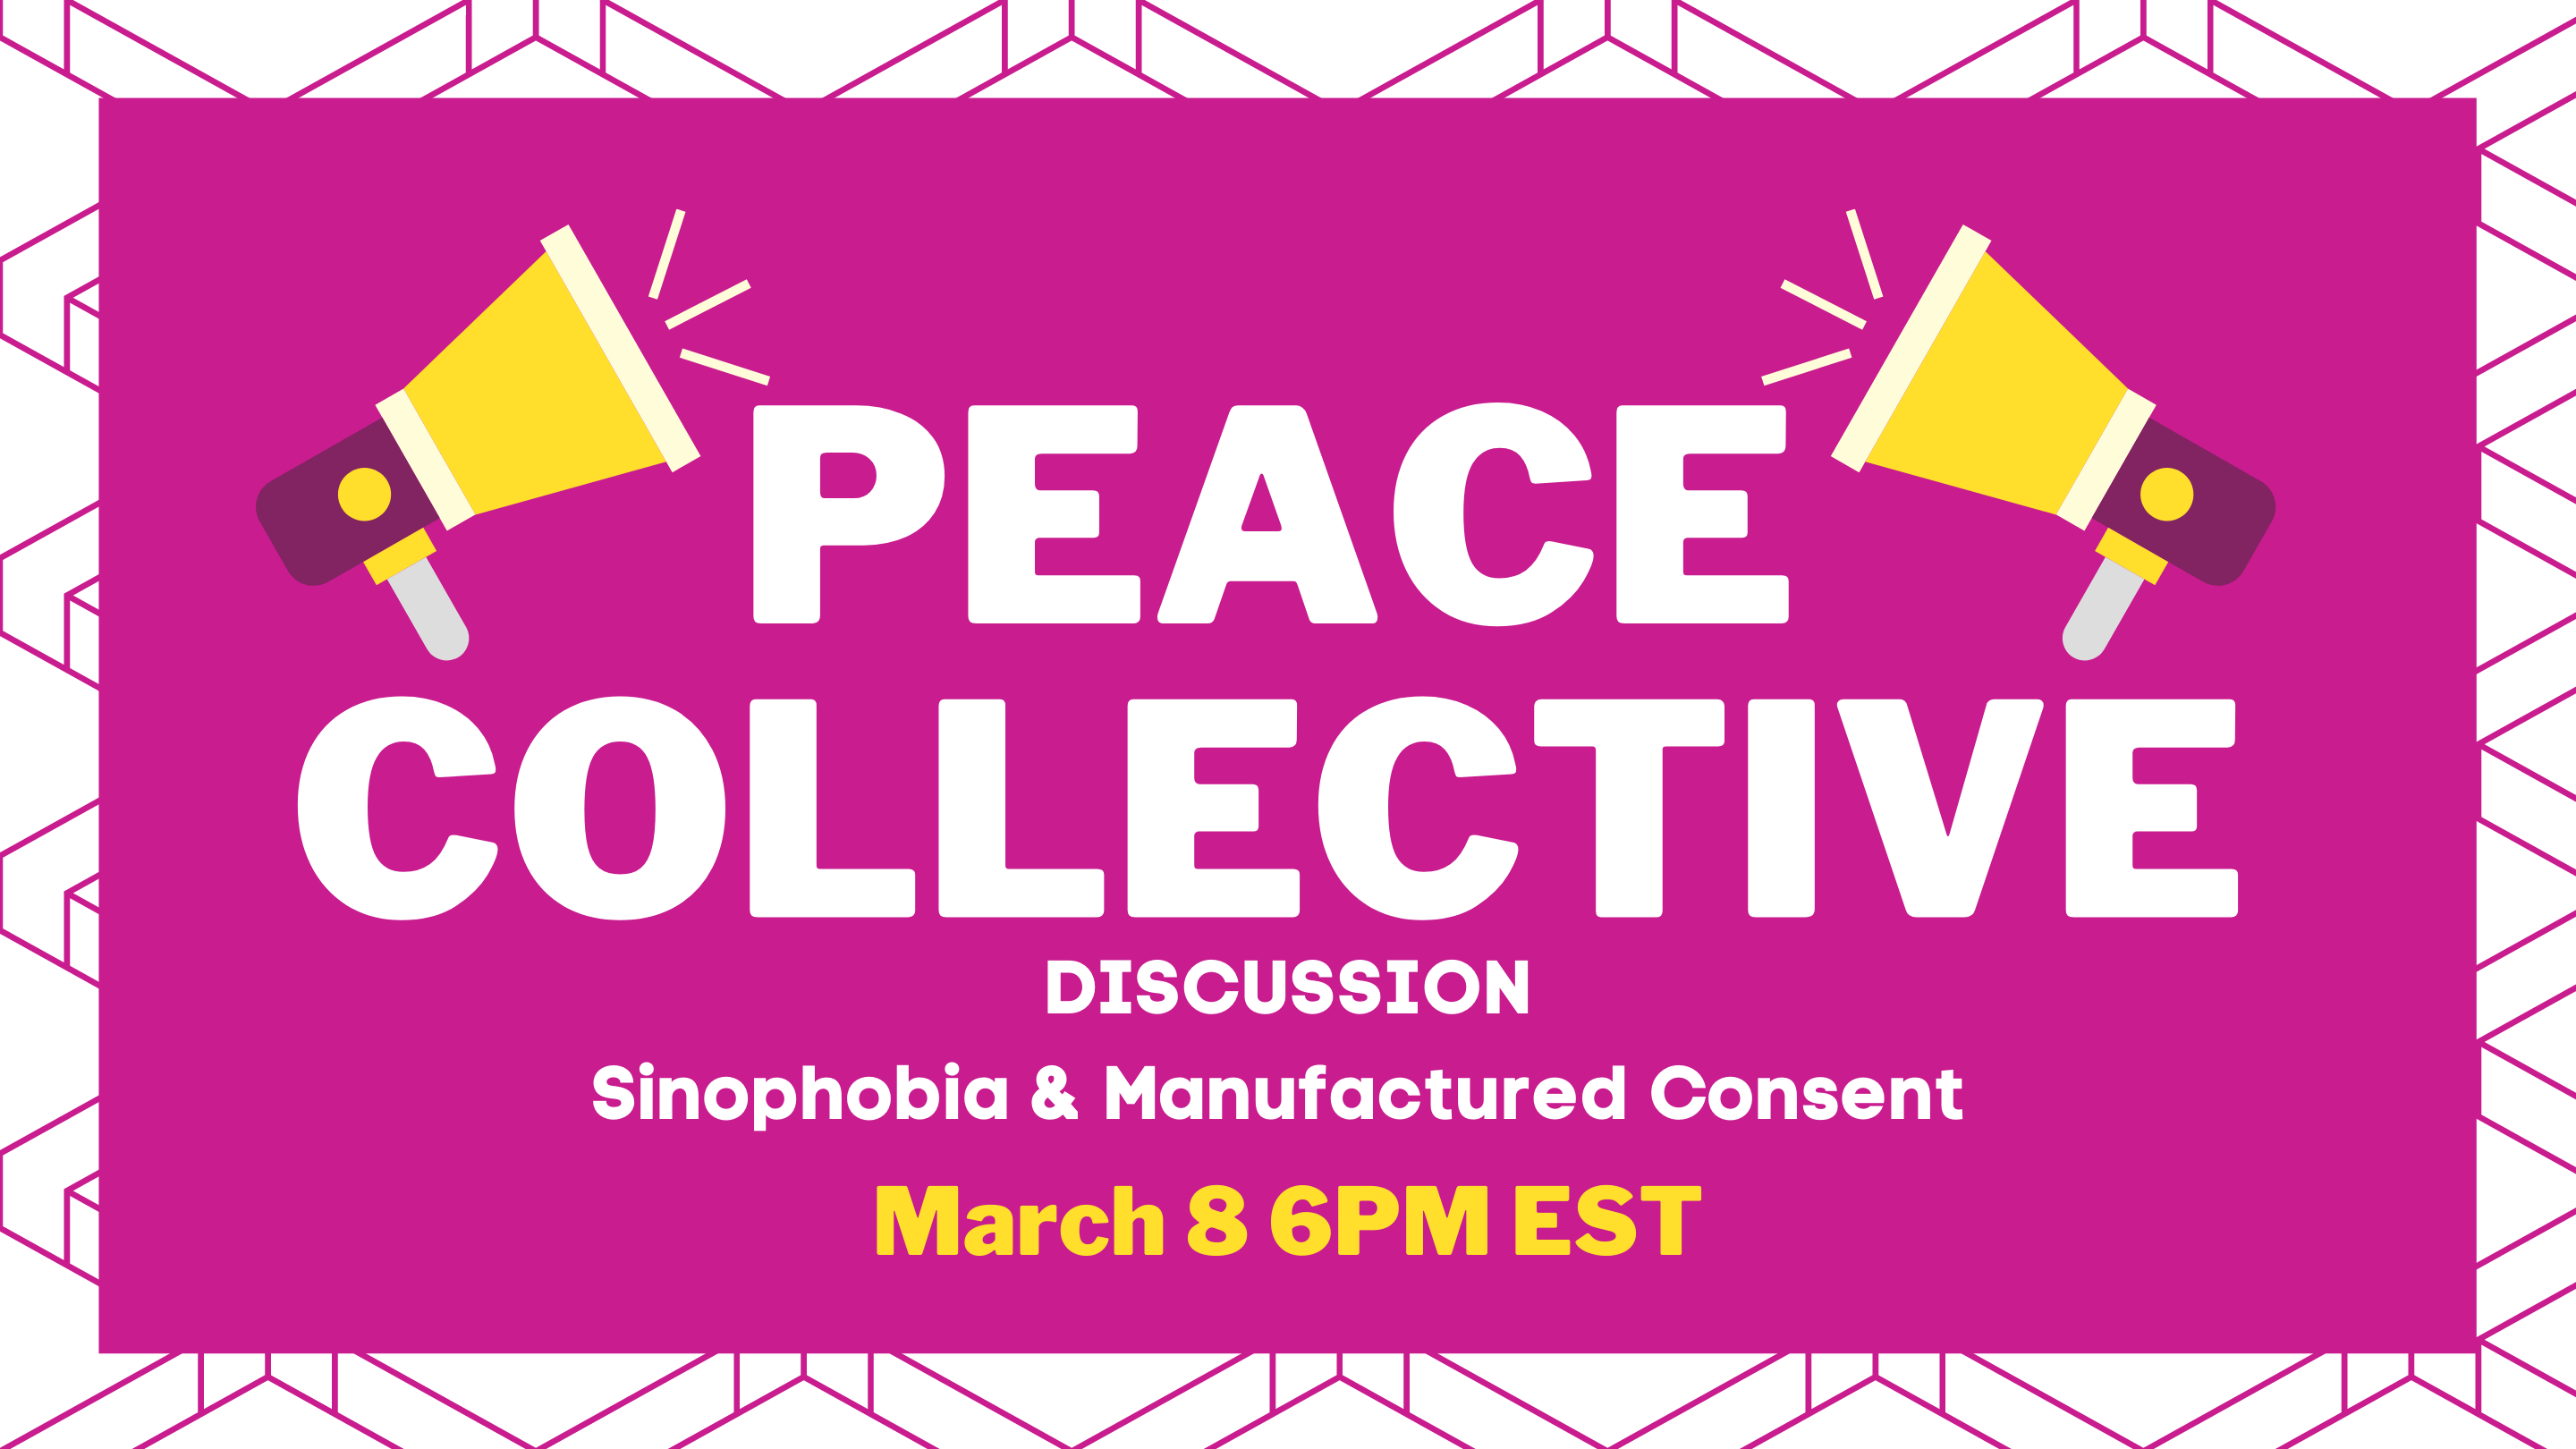 Peace Collective Discussion: Sinophobia & Manufactured Consent